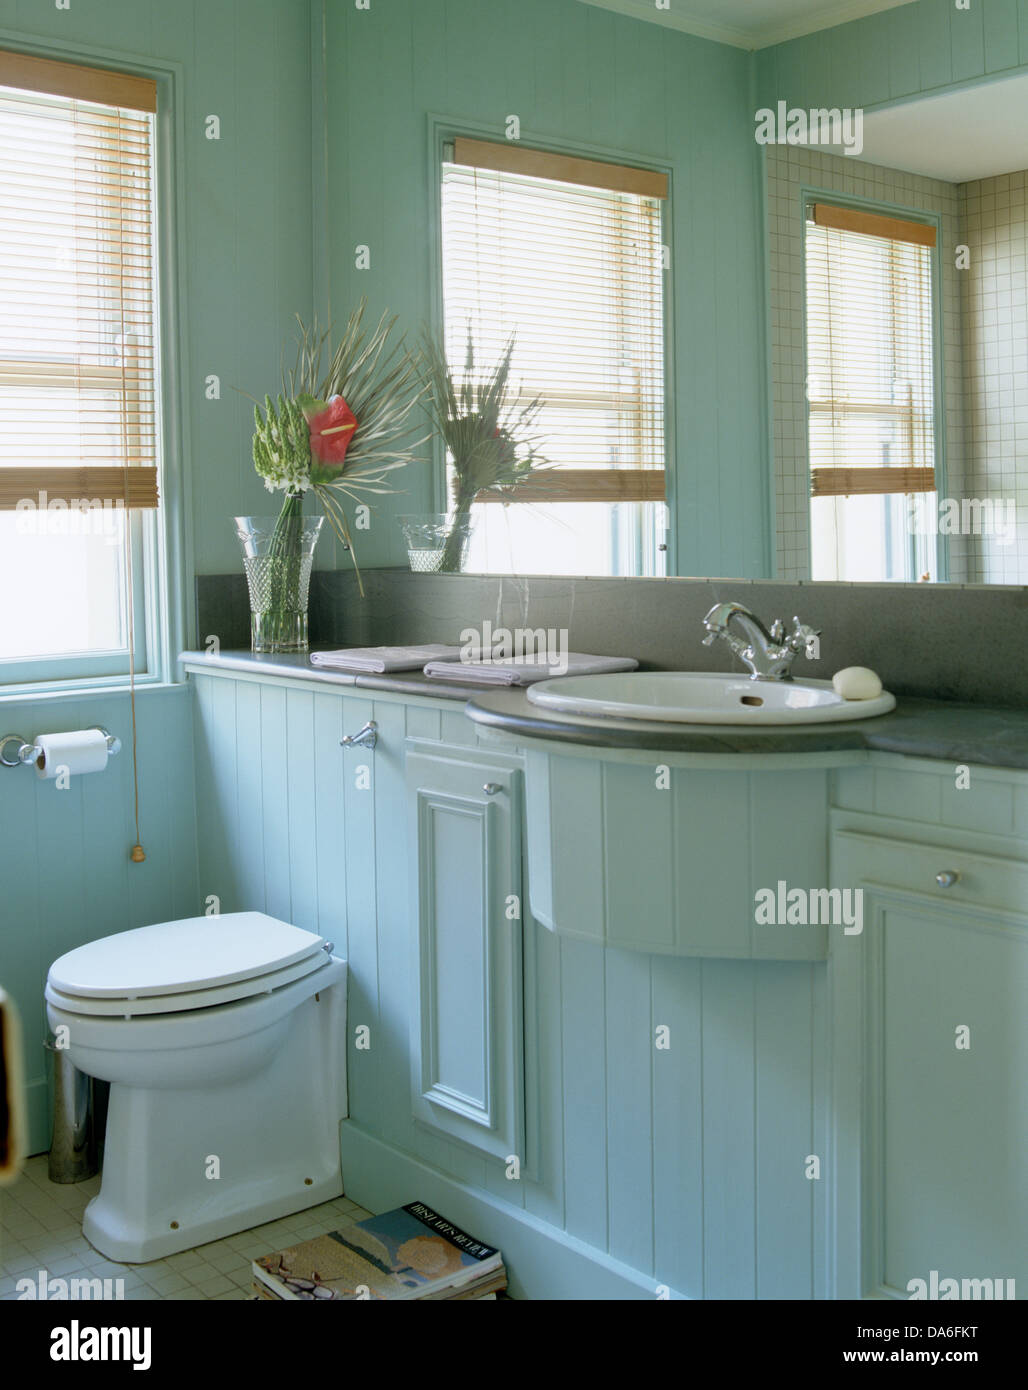 Mirrored Wall Above Basin And Toilet In Tongue Groove Paneled Vanity Unit In Pale Blue Country Bathroom